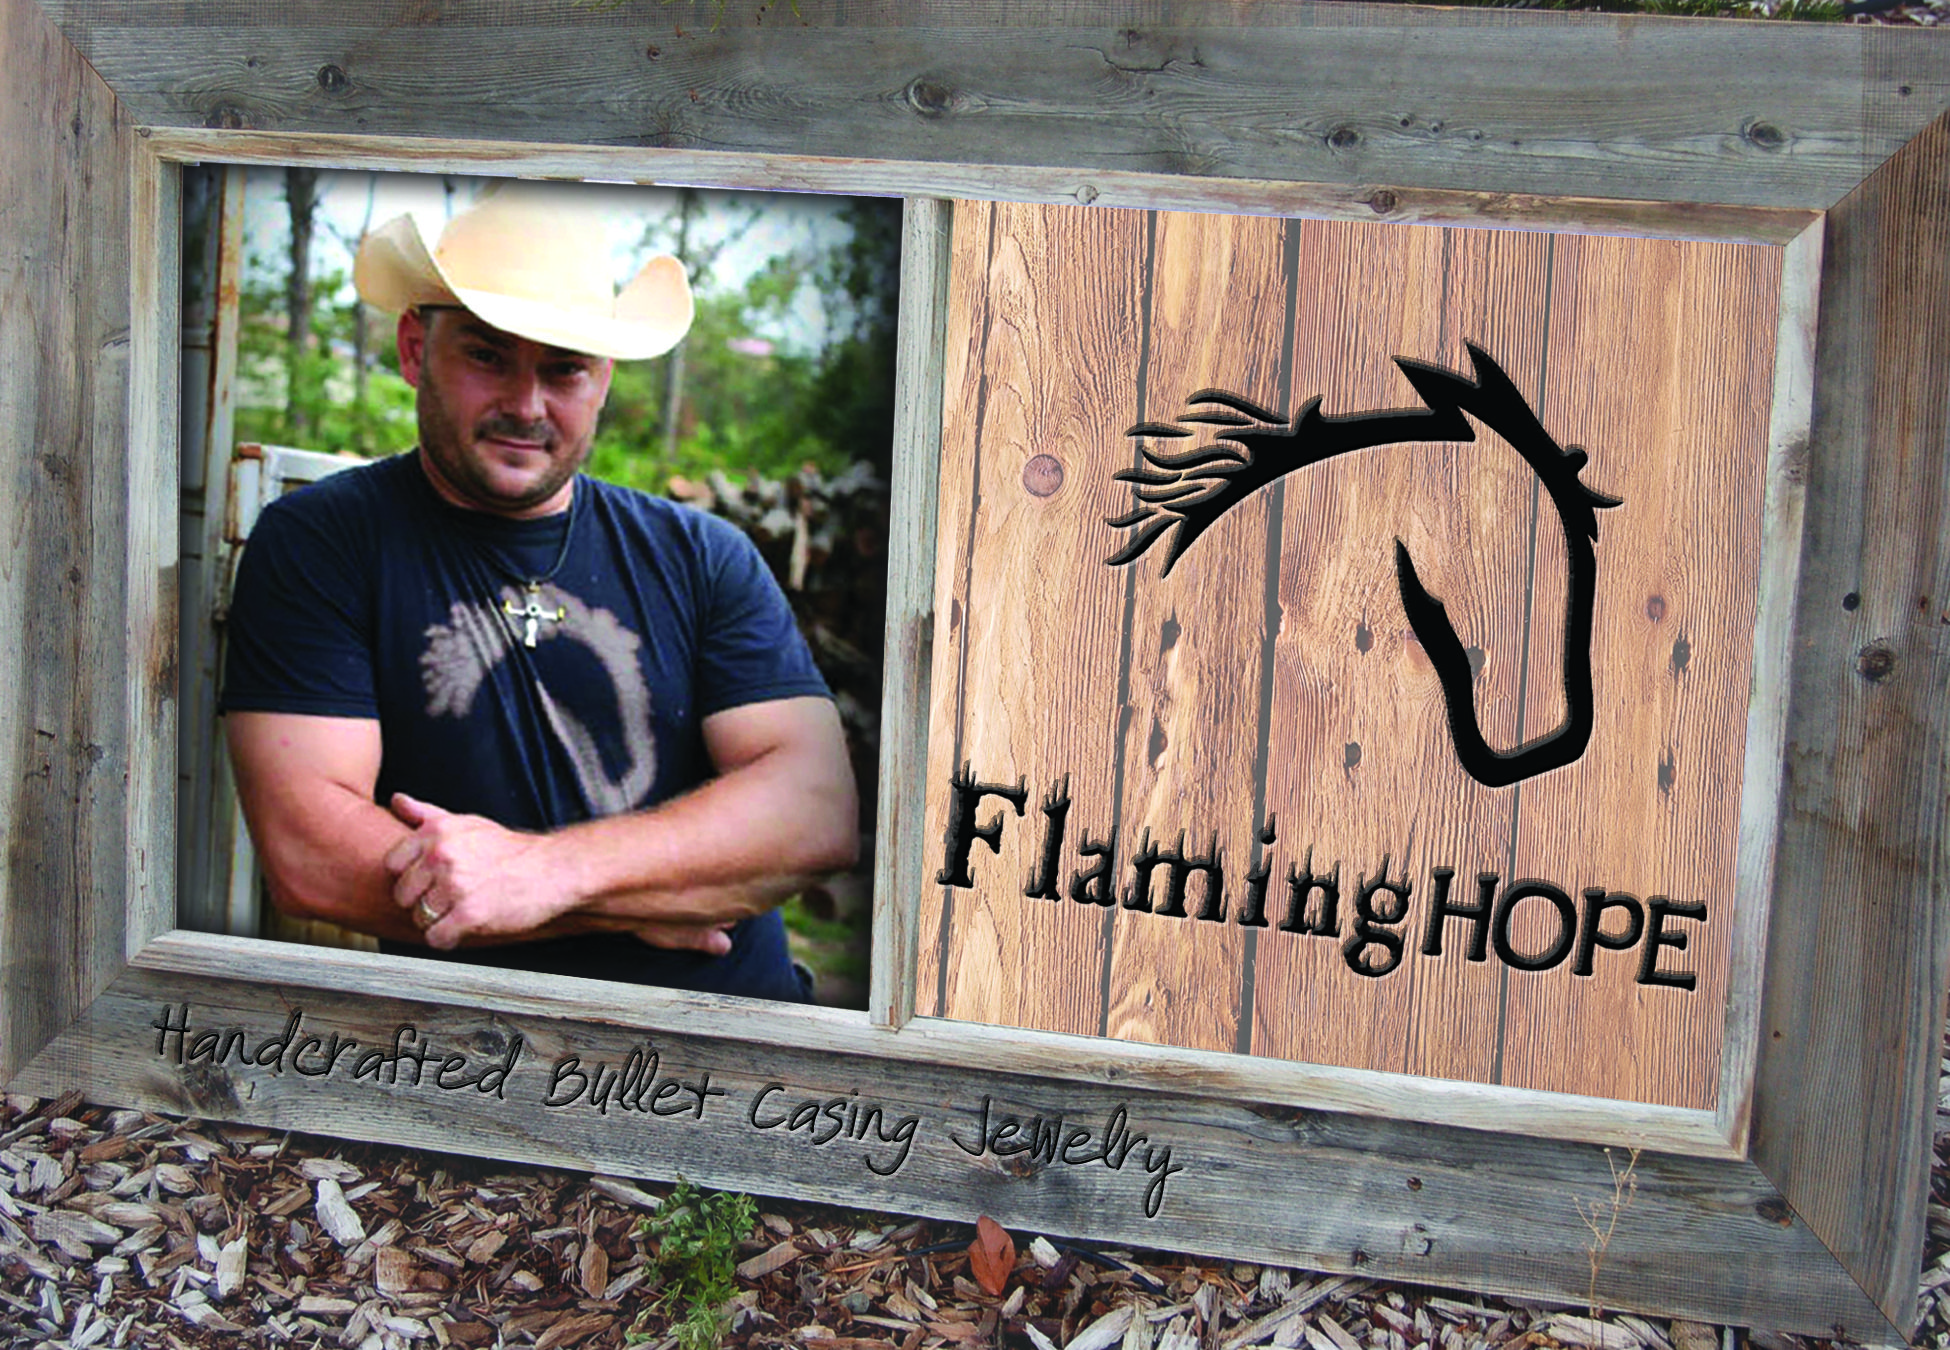 Flaming Hope Handcrafted Bullet Jewlery